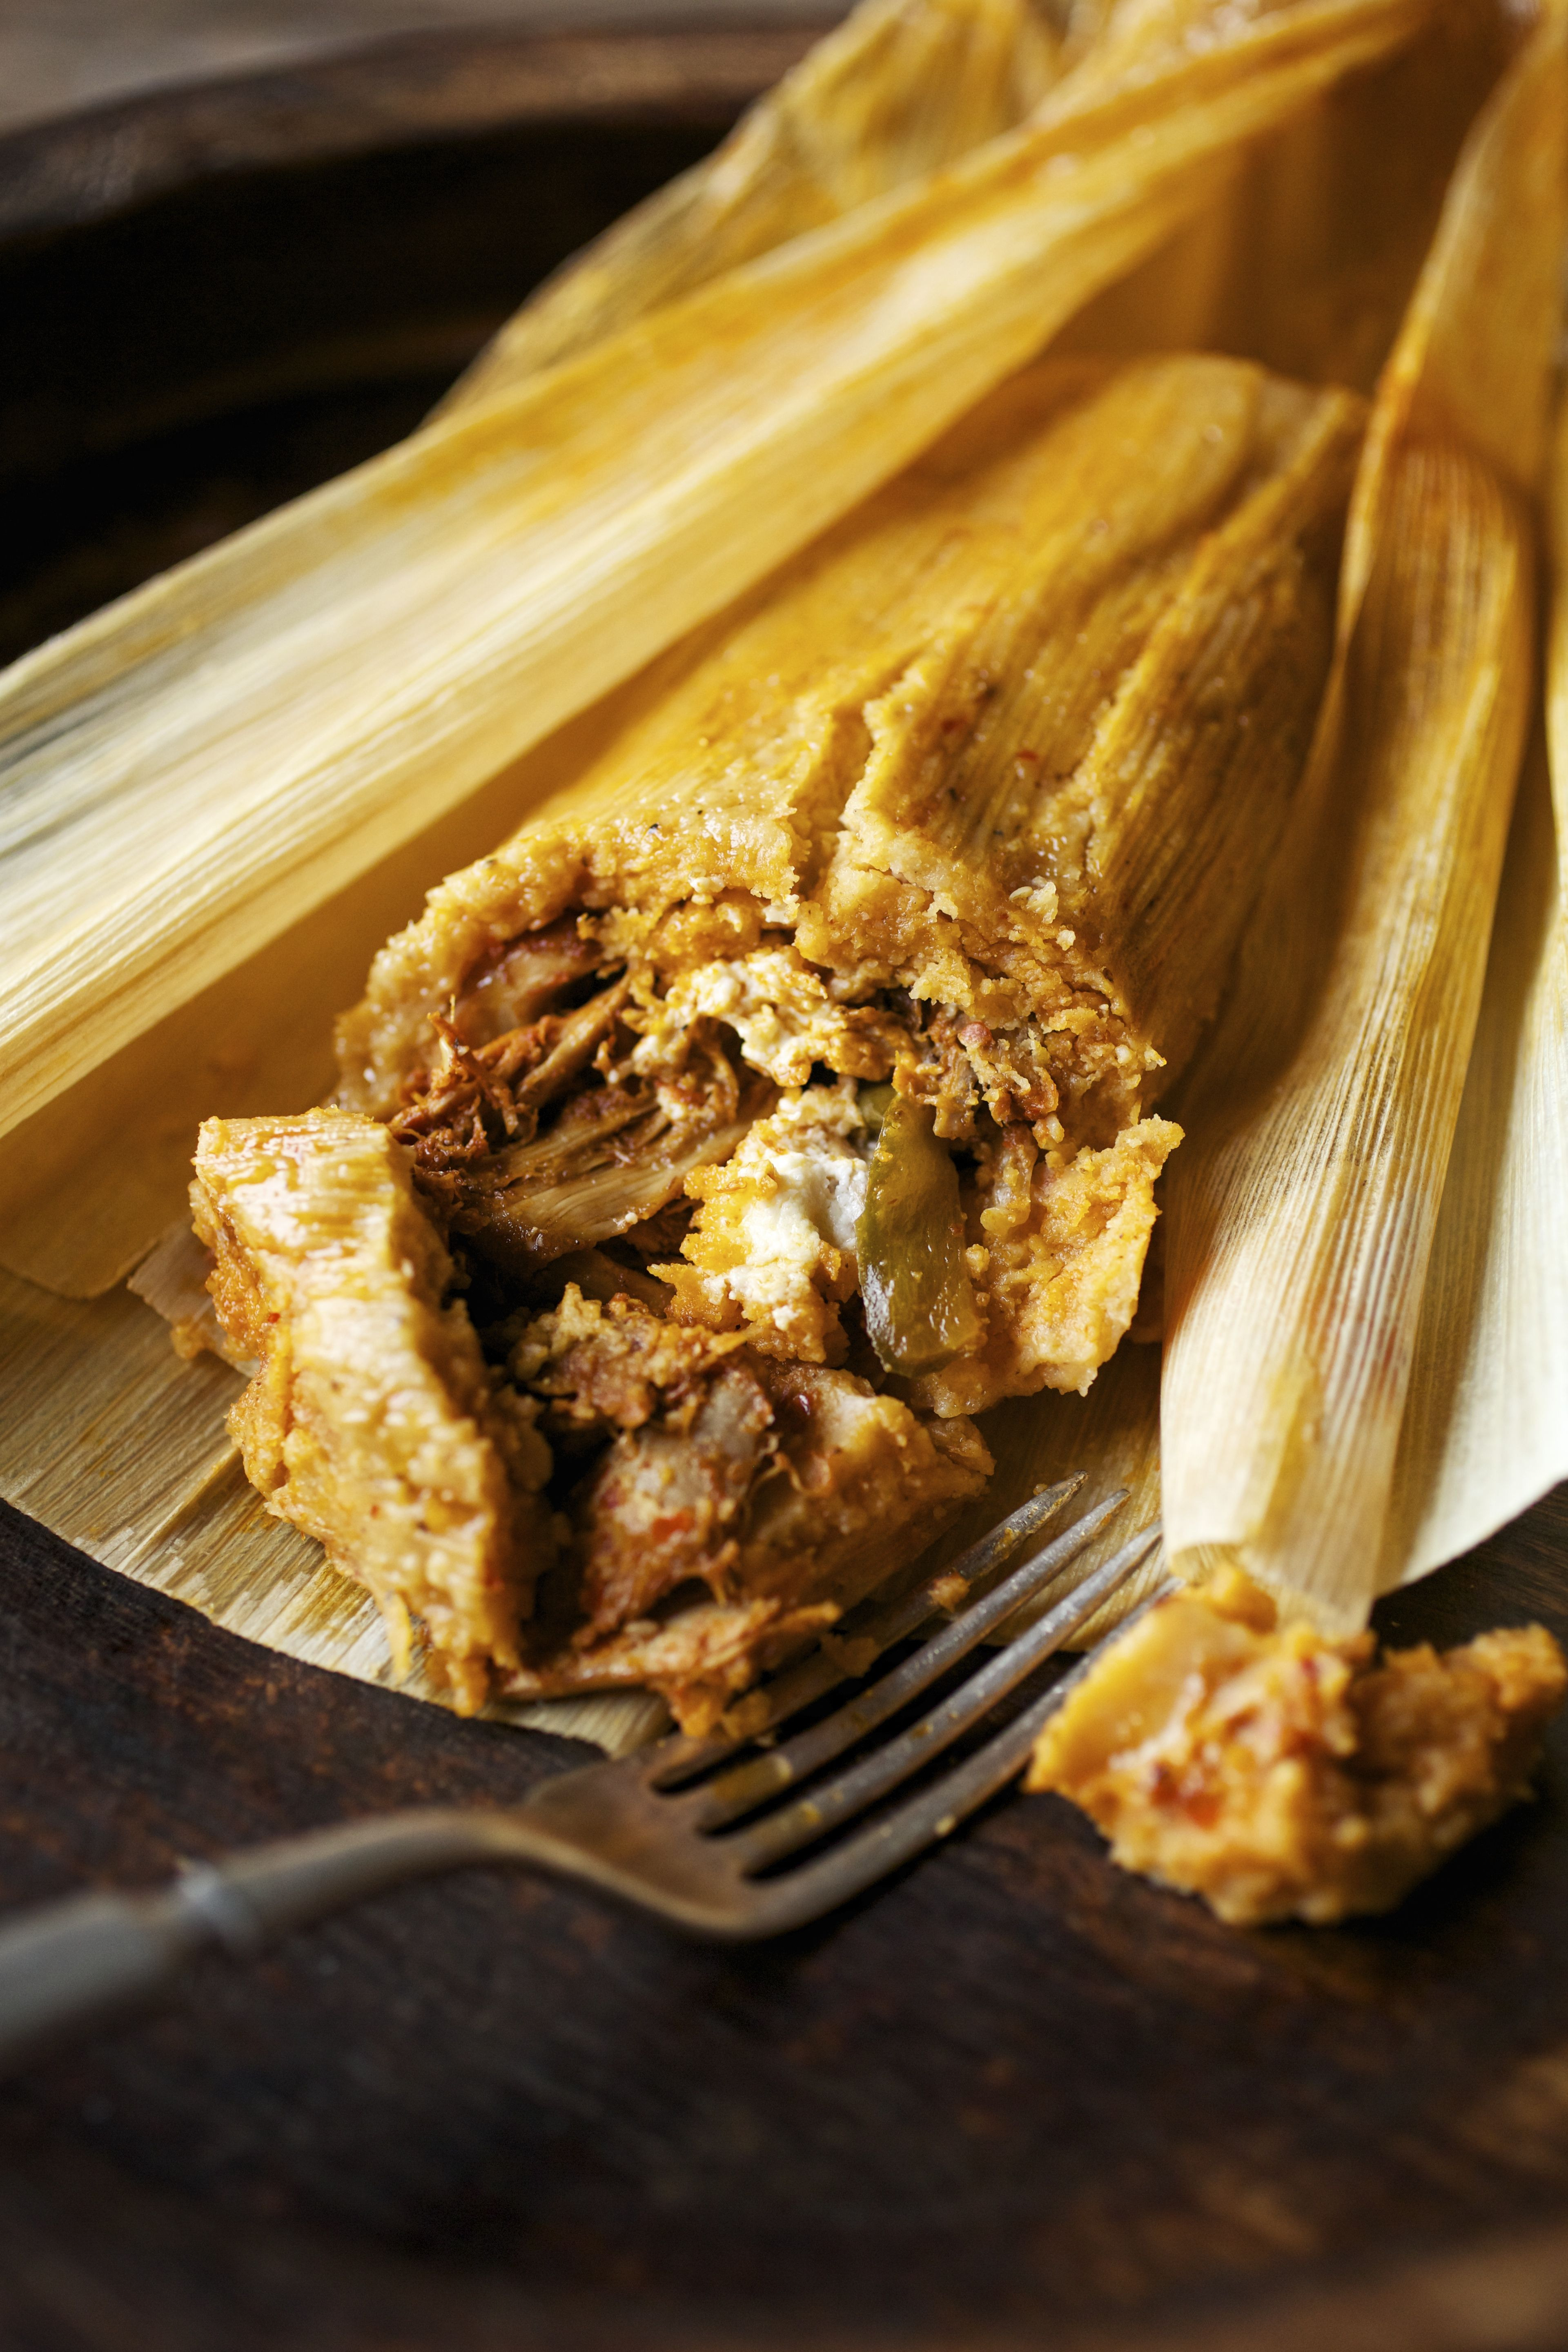 Borracho. This giant tamale that is almost a pound in